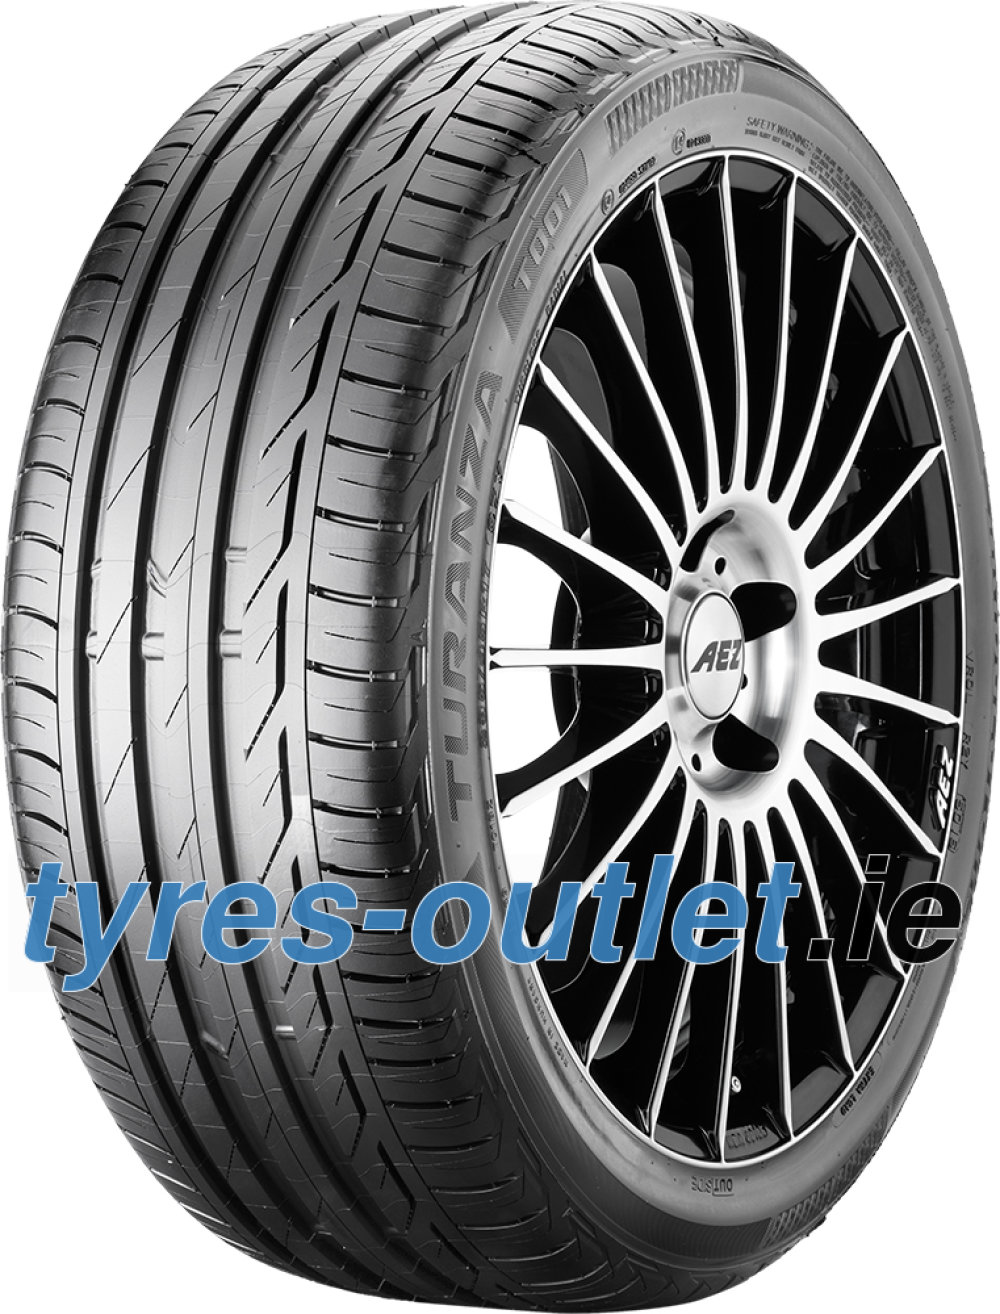 Bridgestone Turanza T001 Evo ( 225/50 R16 92W with rim protection (MFS) )